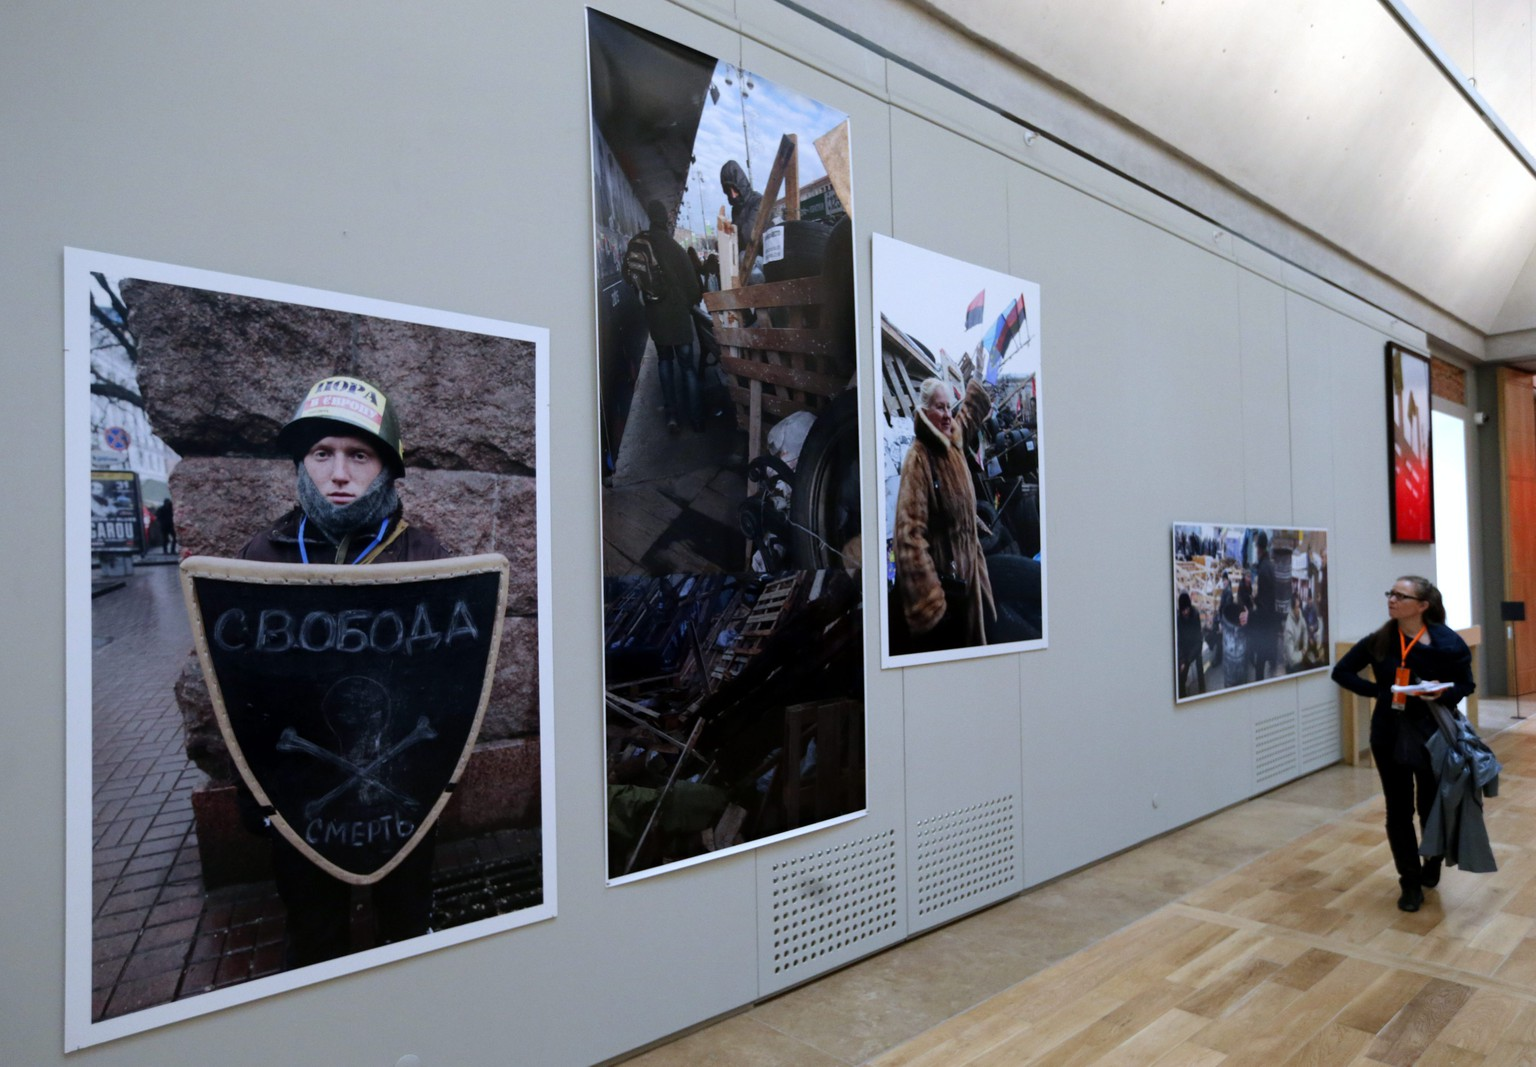 epa04283196 A visitor looks at the artwork 'The Theatre of War' by Ukrainian photographer Boris Mikhailov during the press preview day of the 'Manifesta 10' European Biennial of Contemporary Art at the State Hermitage Museum in St. Petersburg, Russia, 26 June 2014. After many months of planning, 'Manifesta 10' will finally open to the public on 28 June.  EPA/ANATOLY MALTSEV